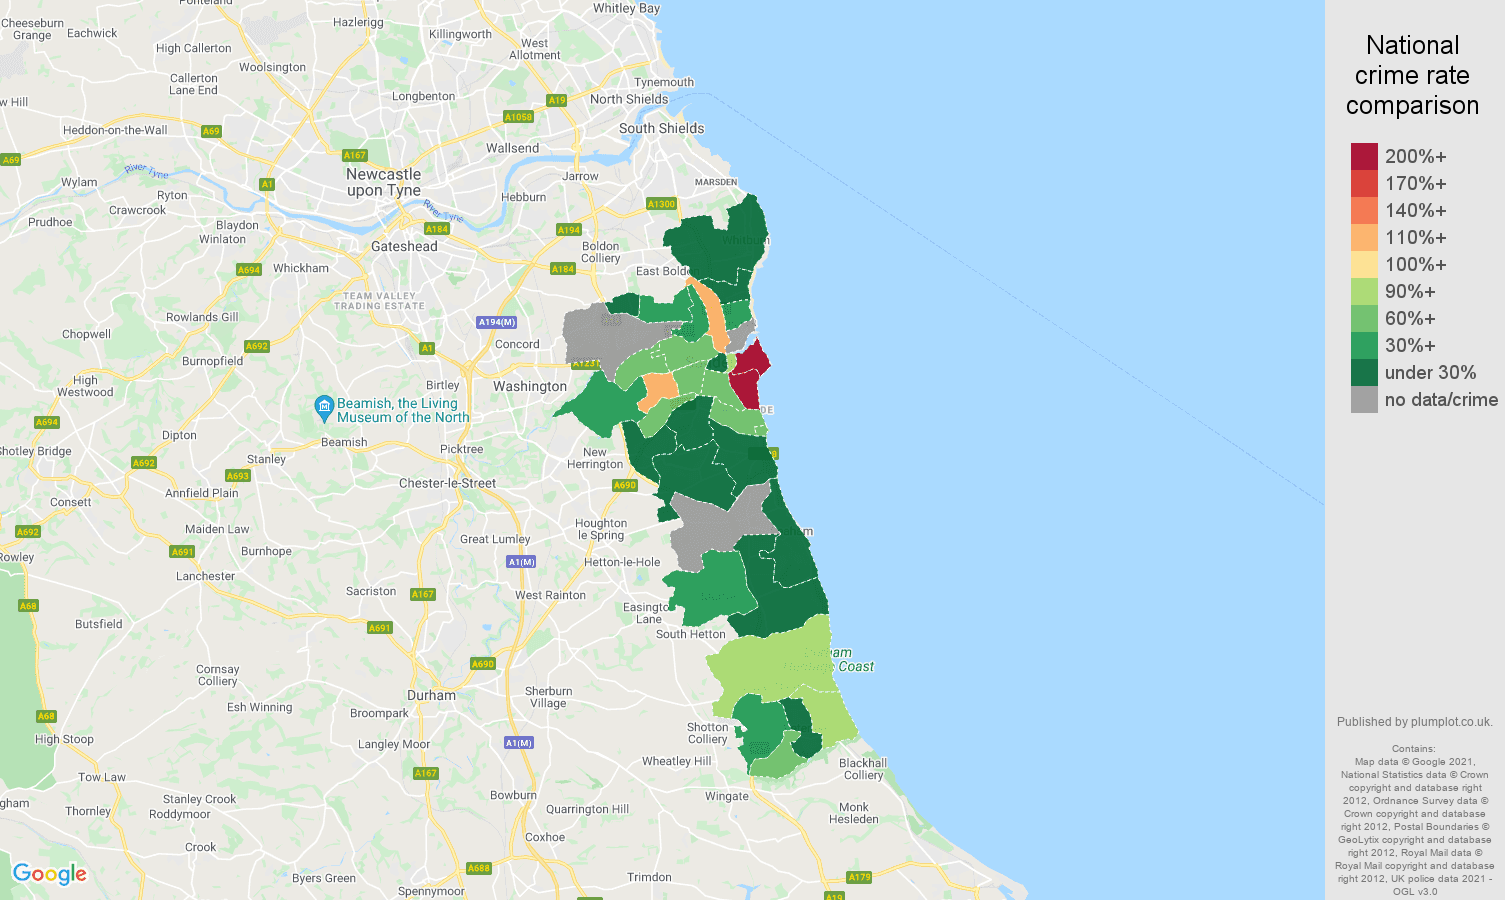 Sunderland robbery crime rate comparison map